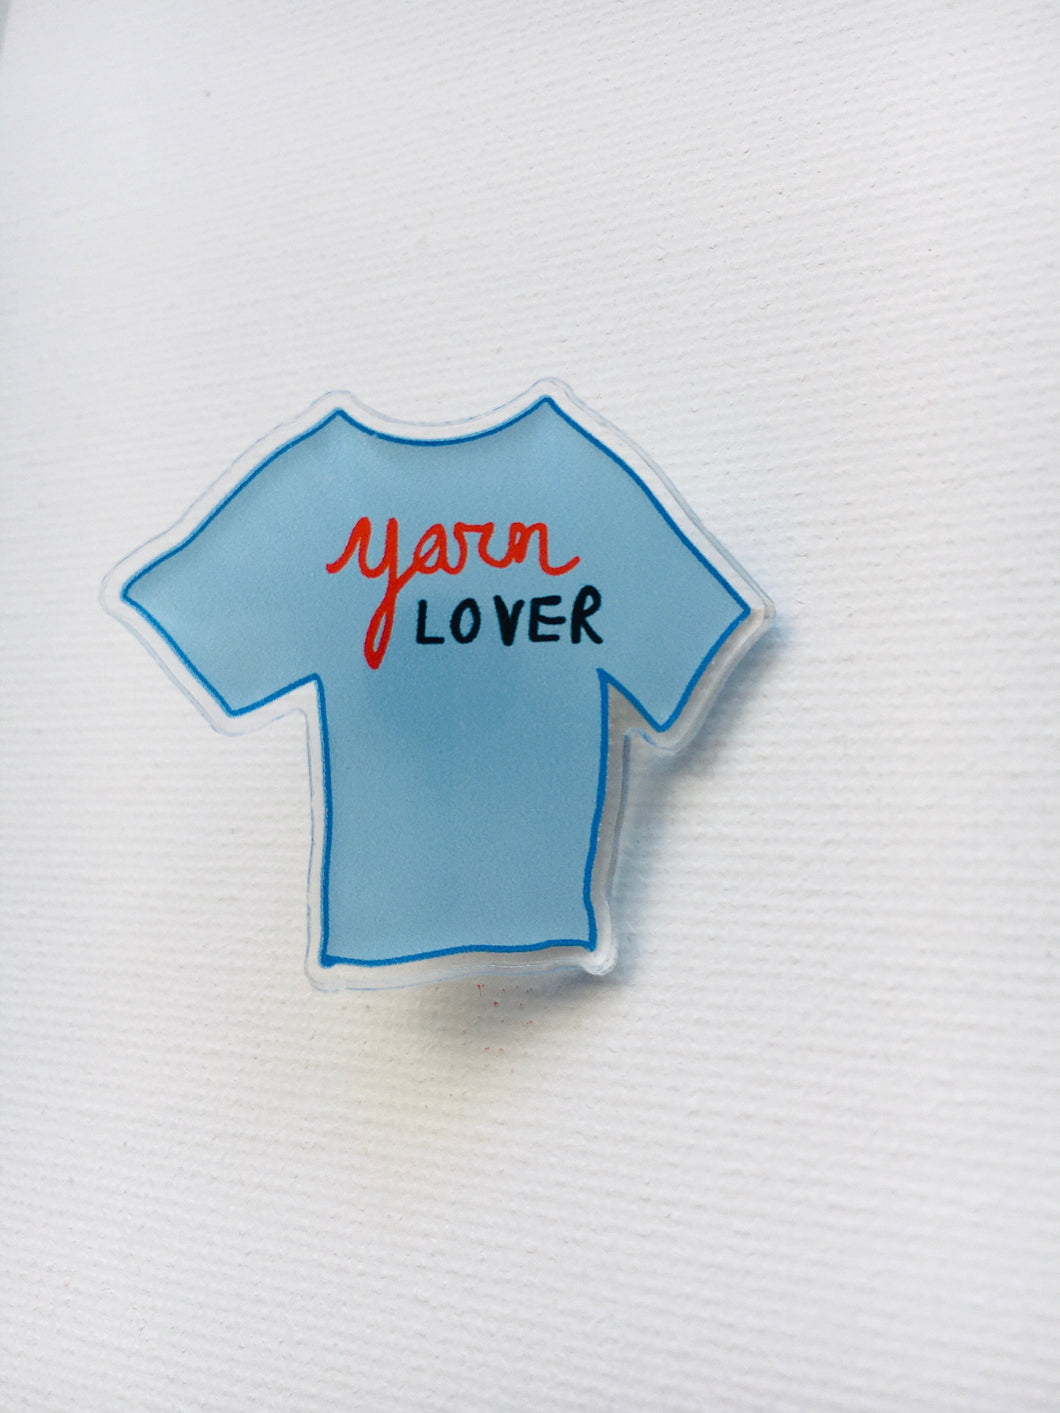 Yarn Lover Acrylic Pin